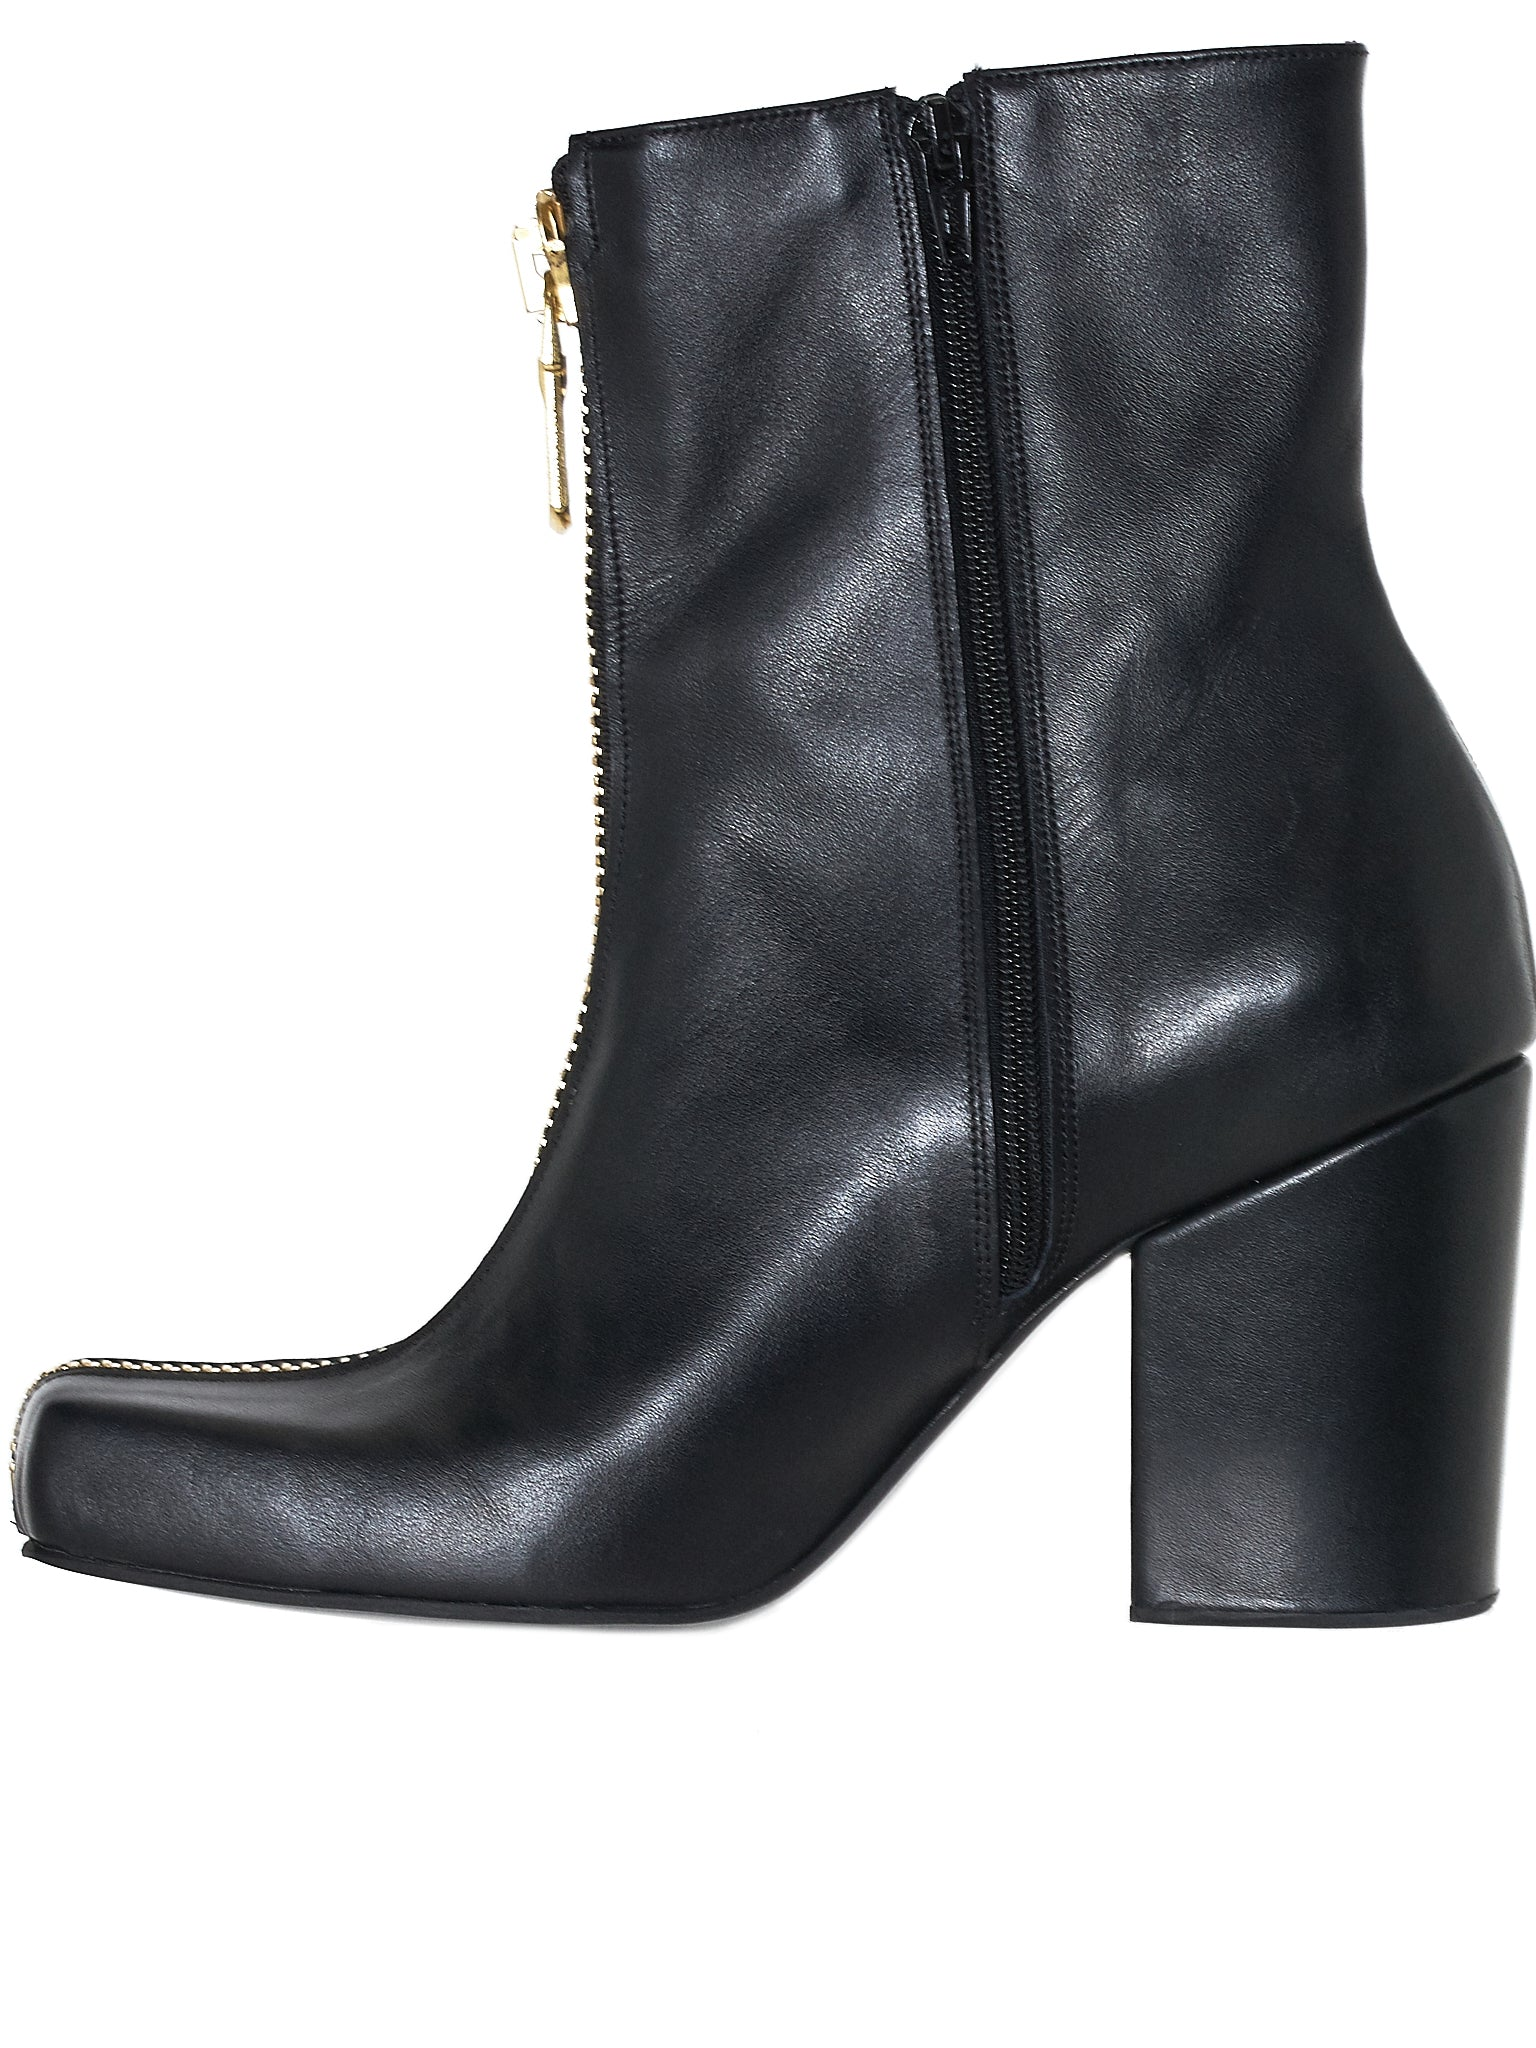 Charles Jeffrey Loverboy Boot - Hlorenzo Back